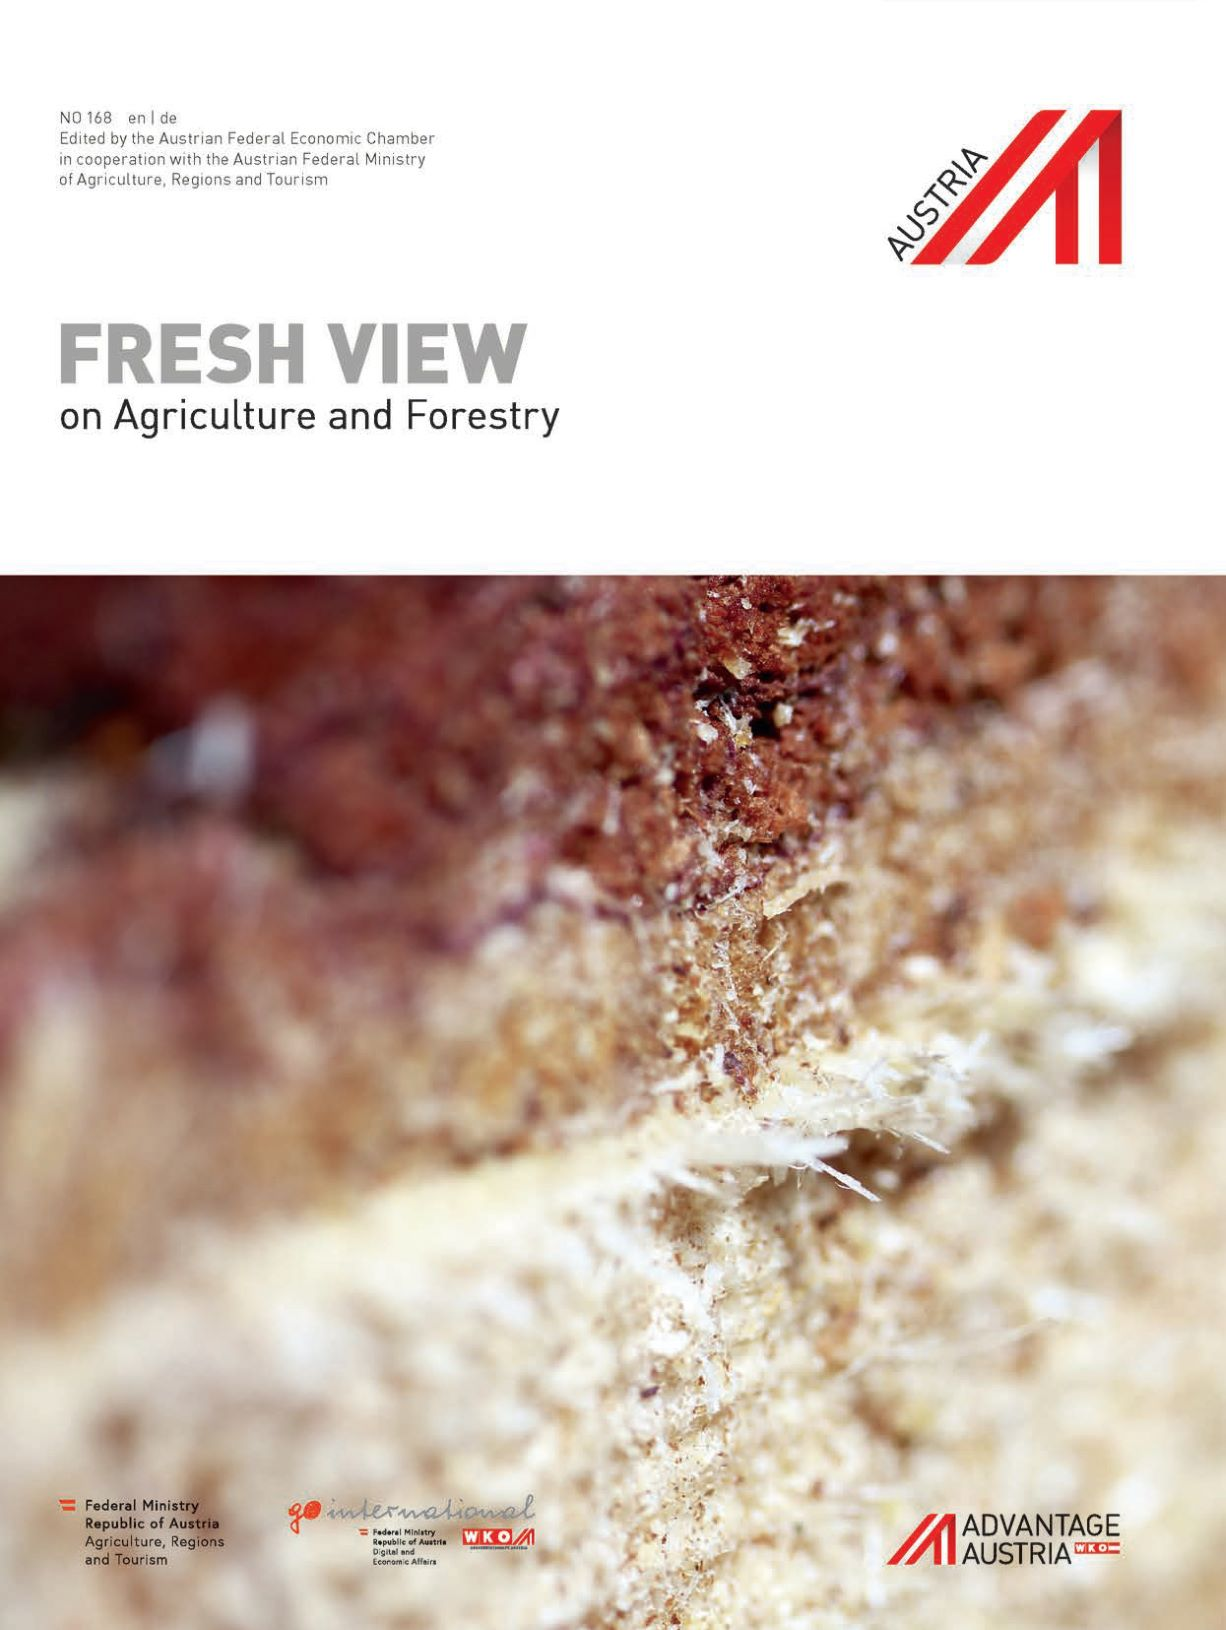 No. 168, Agriculture and Forestry, en | de